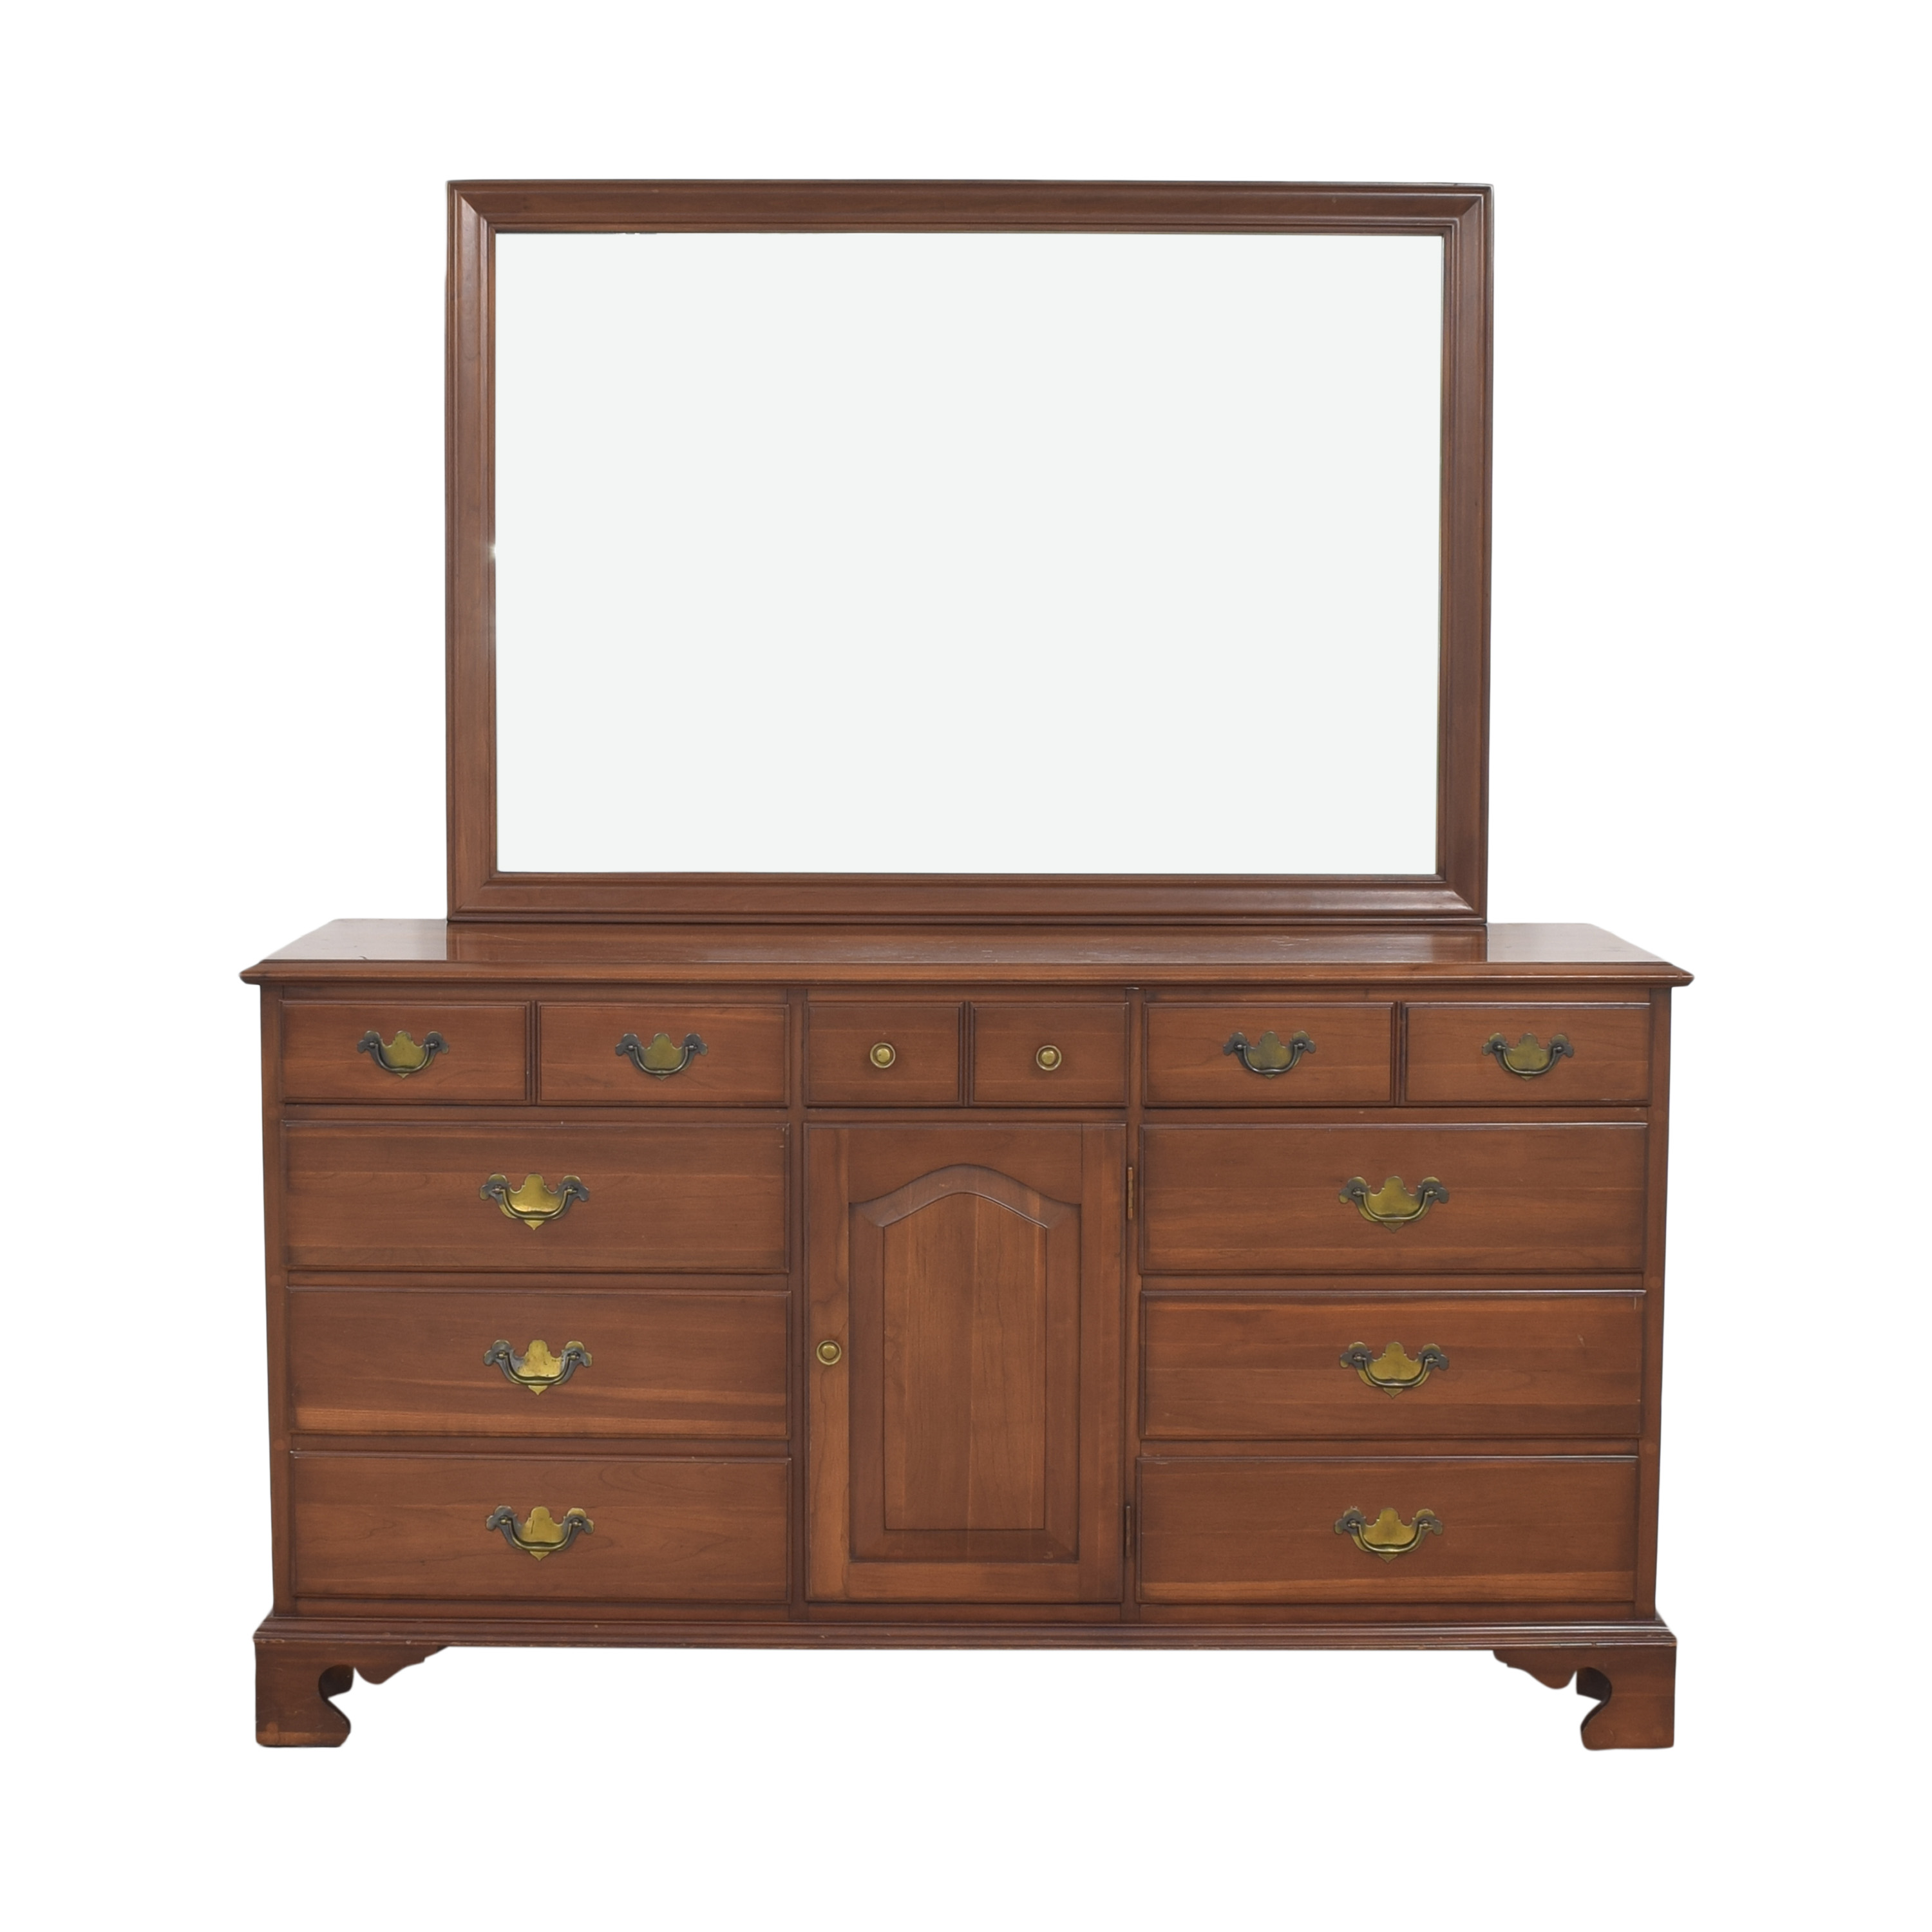 Permacraft Twelve Drawer Concord Dresser with Mirror sale